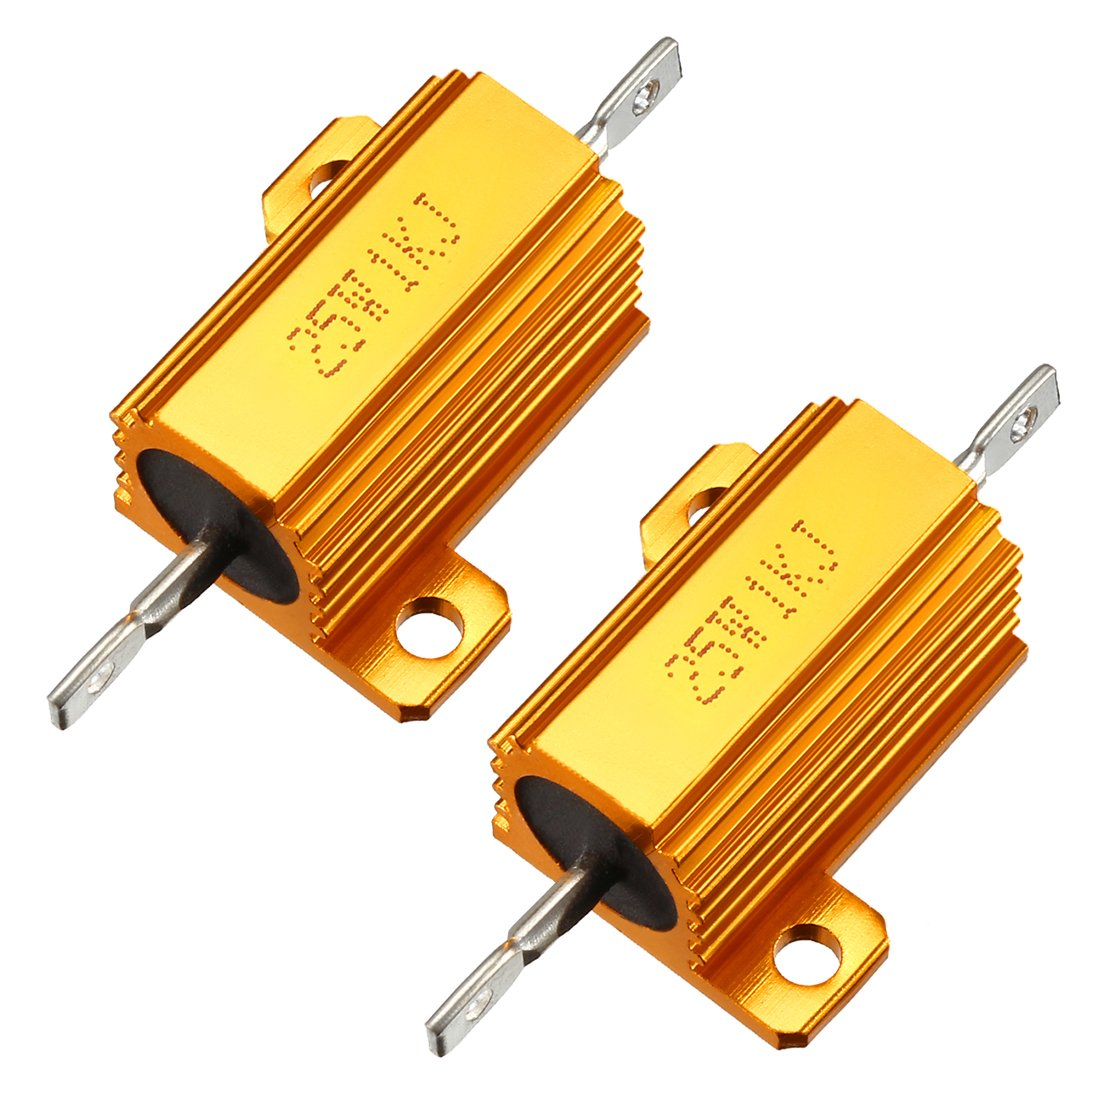 uxcell 25W 1k Ohm 5/% Aluminum Housing Resistor Screw Tap Chassis Mounted Aluminum Case Wirewound Resistor Load Resistors Gold Tone 2 pcs a18032700ux0054